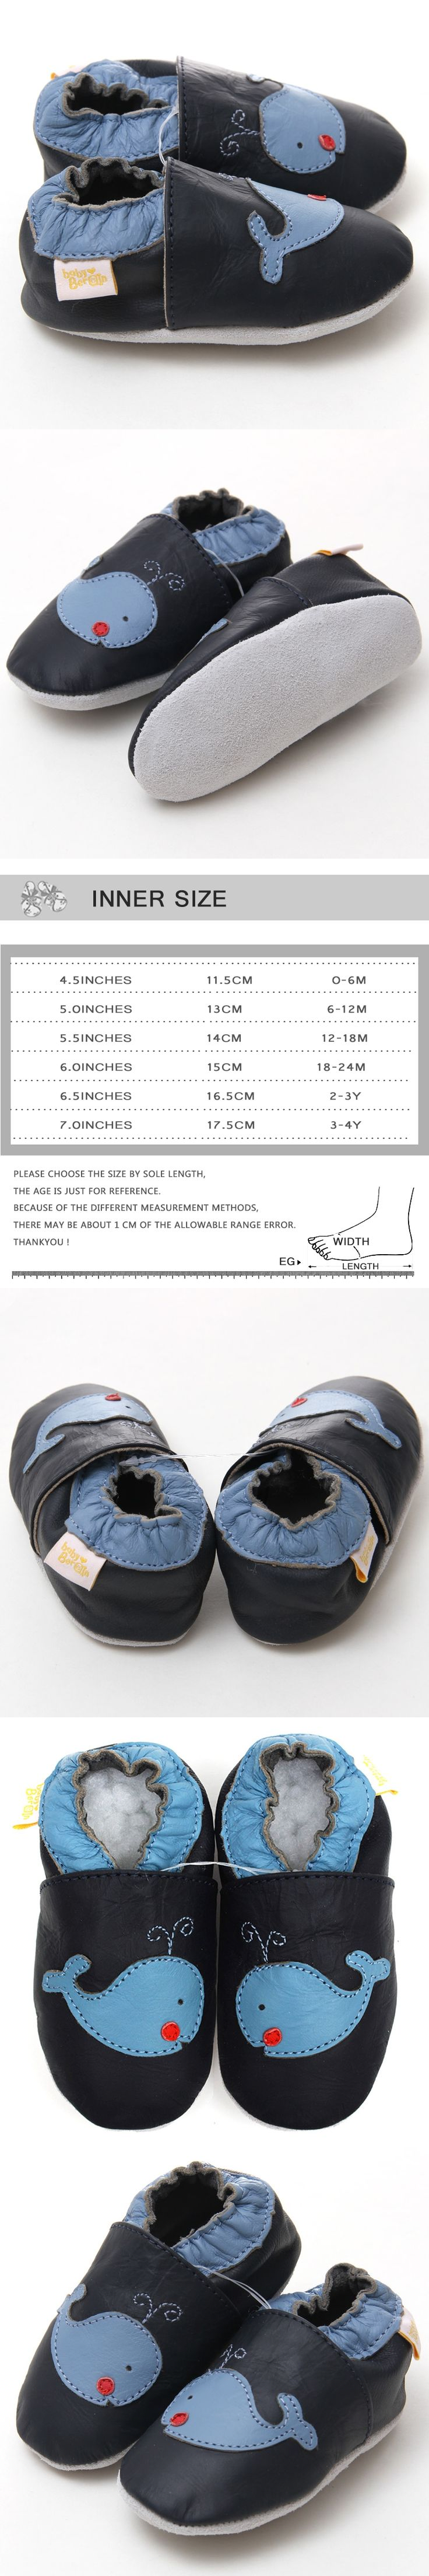 21 best Baby Shoes images on Pinterest